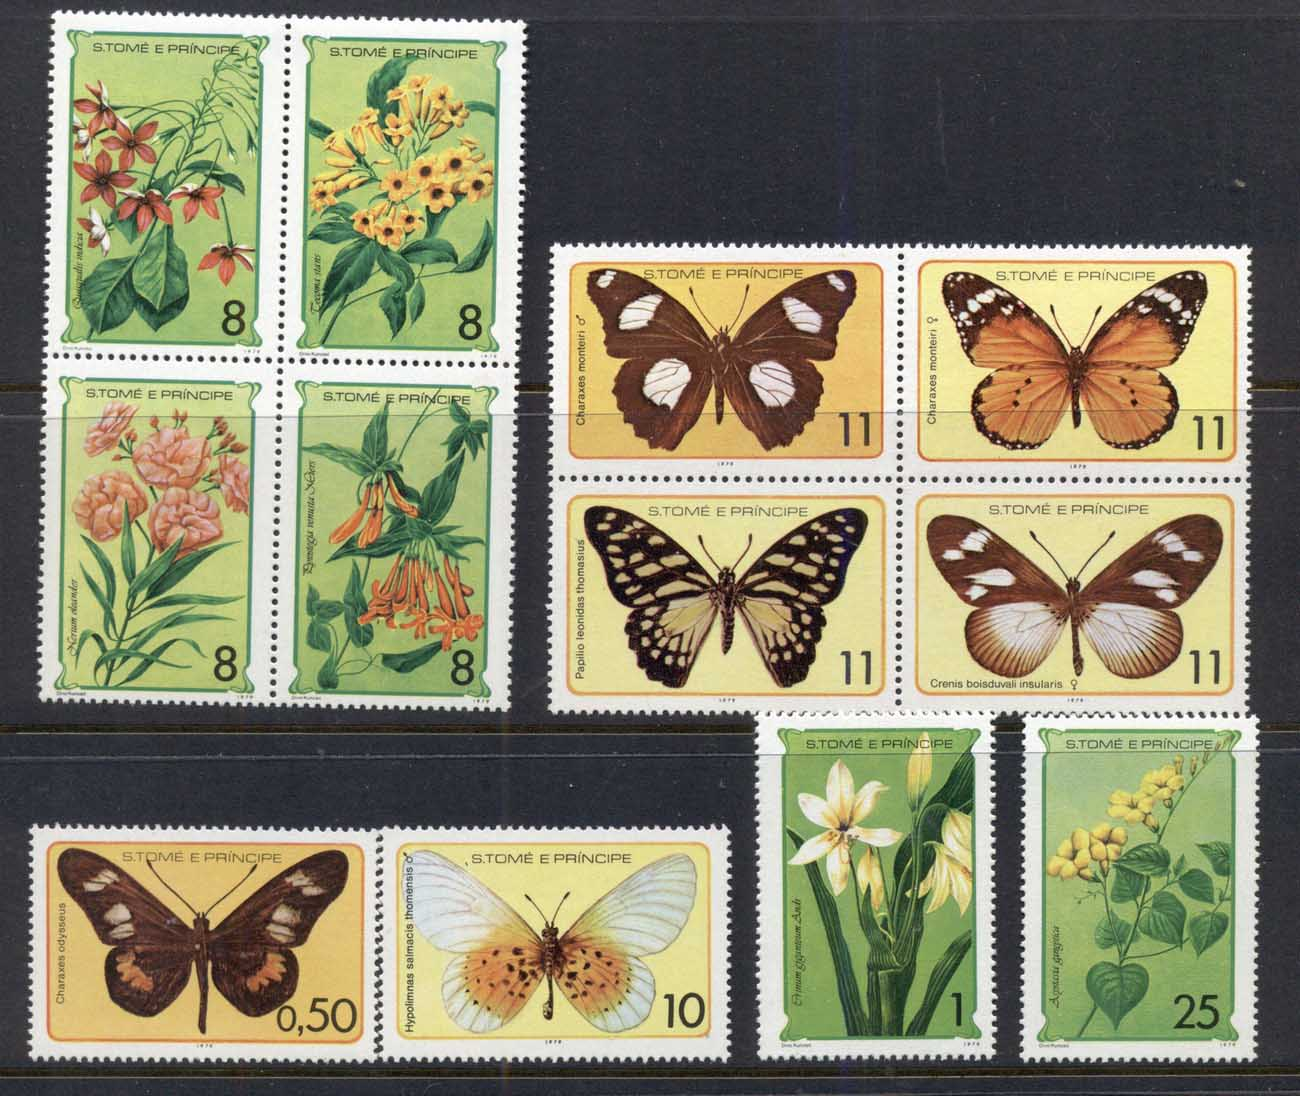 Sao Tome et Principe 1979 Insects, Flowers Butterflies MUH